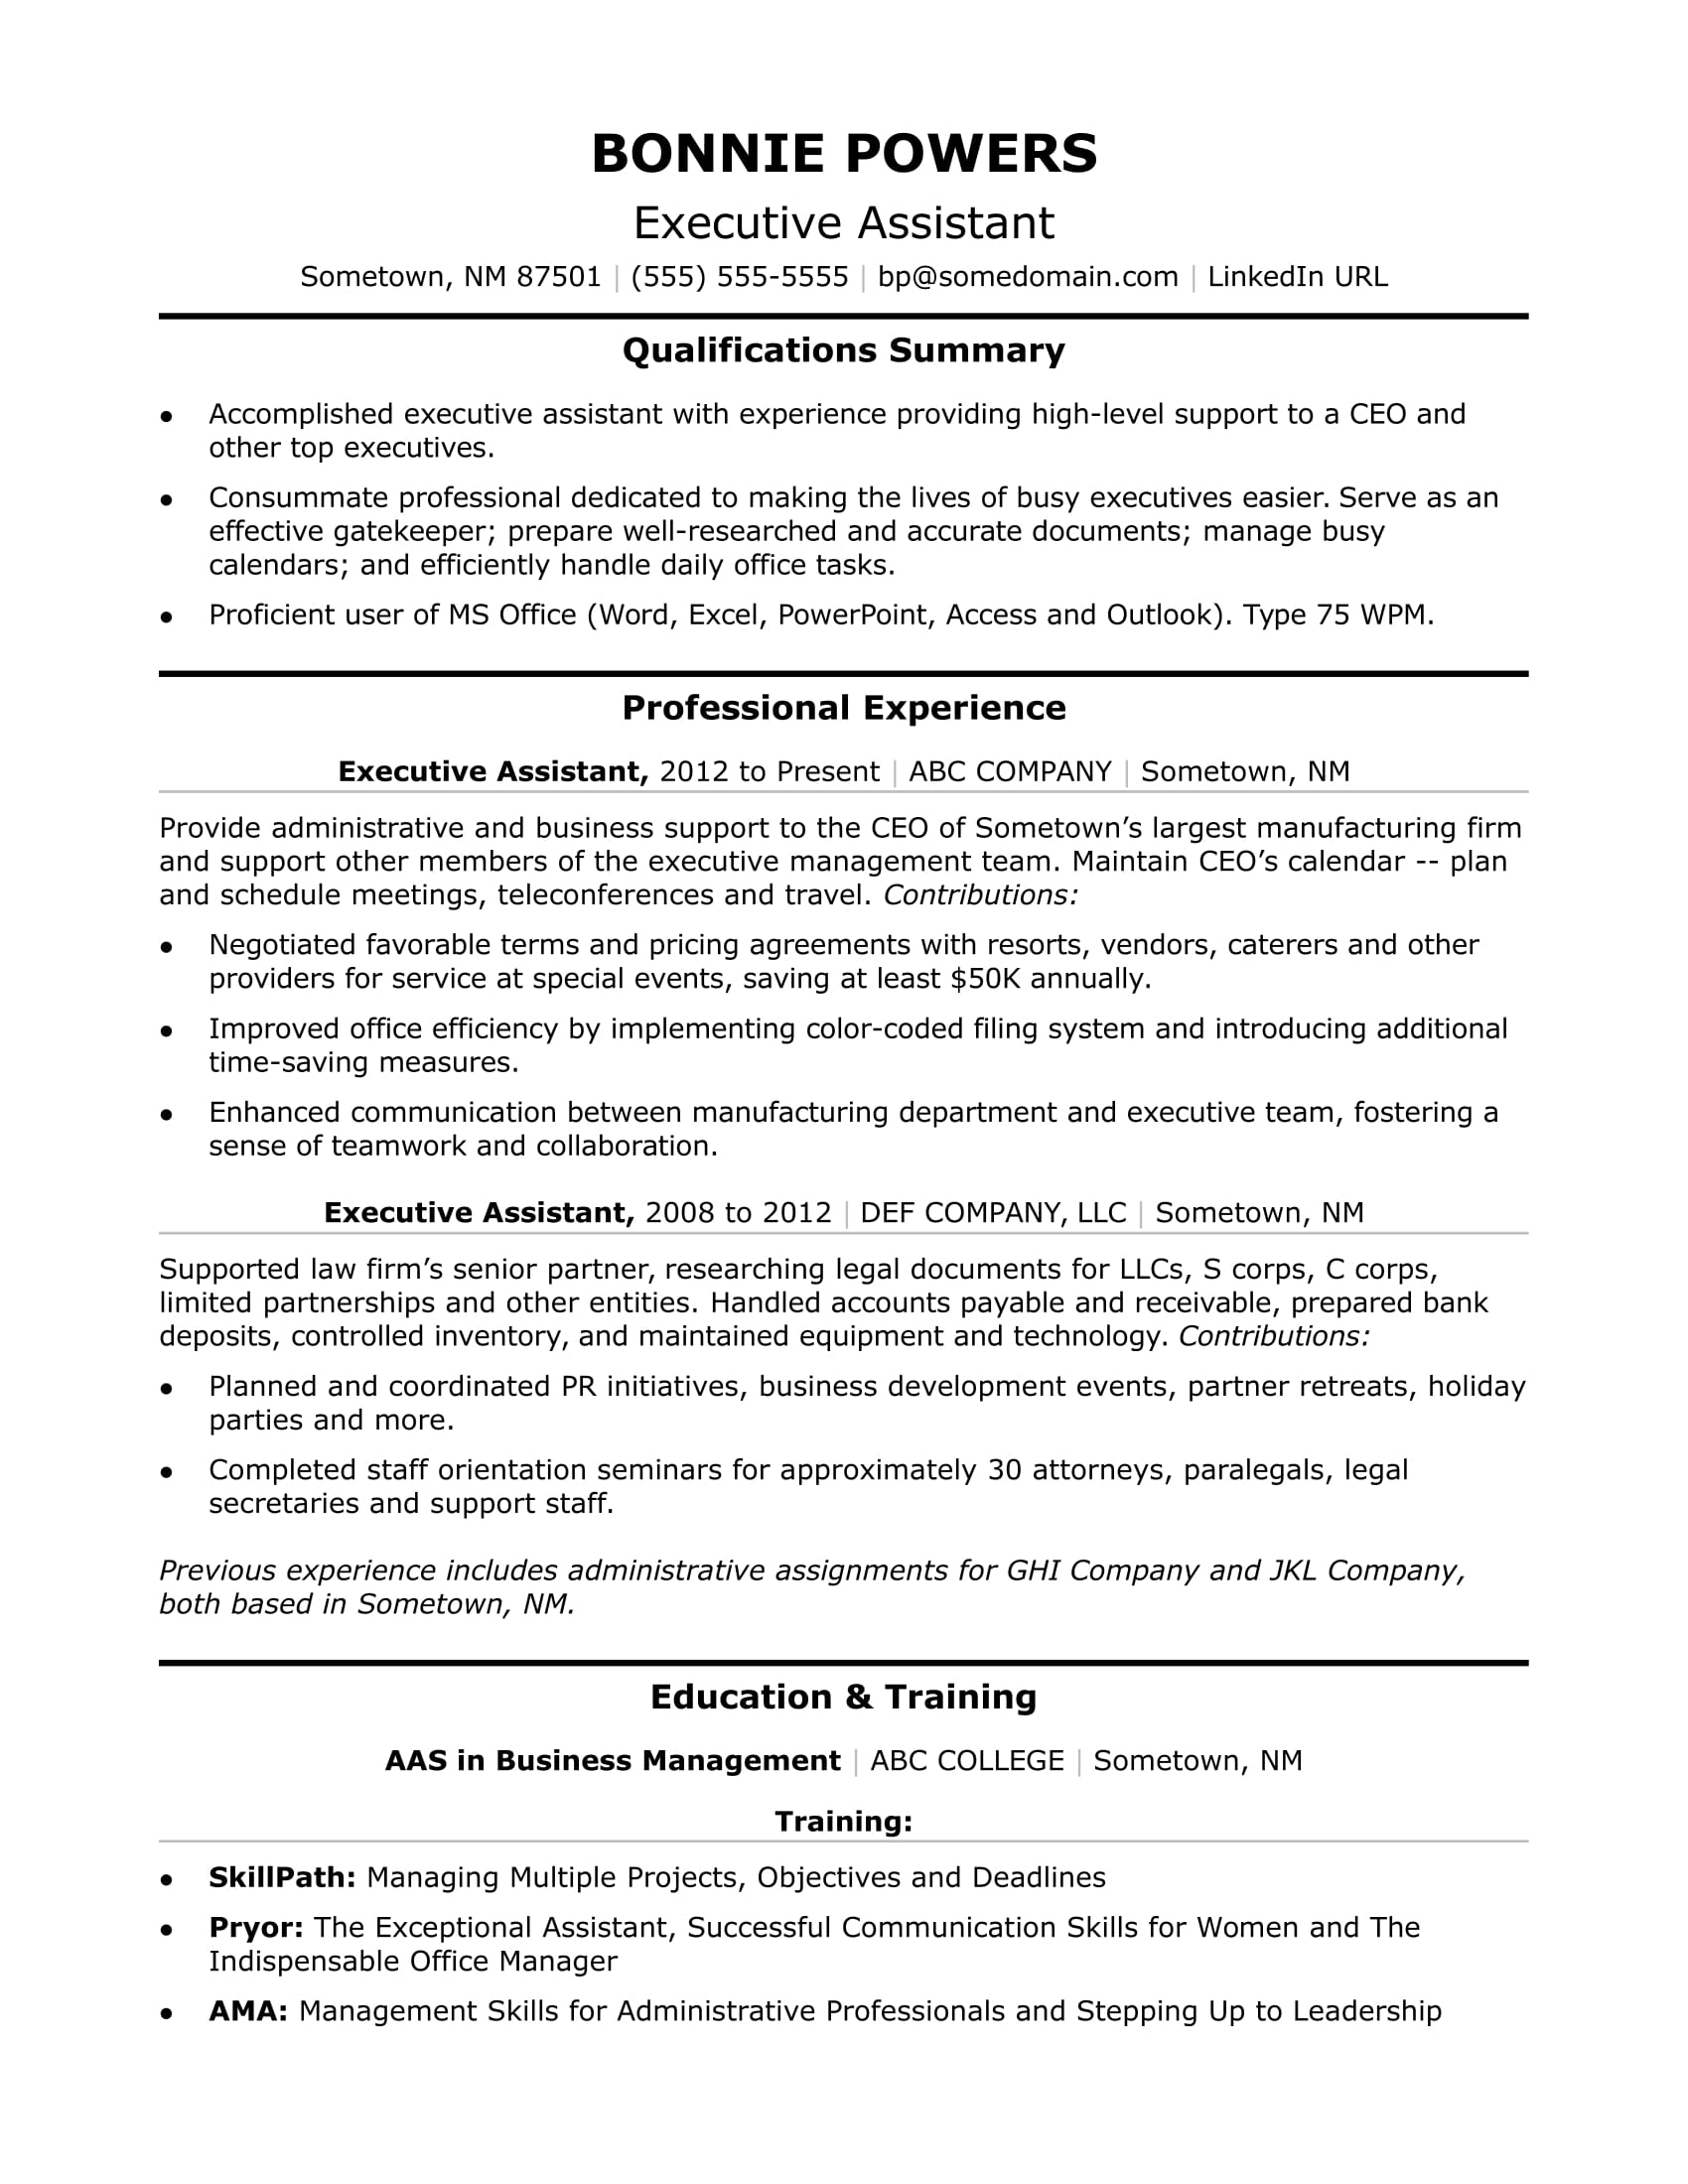 executive administrative assistant resume sample monster for office with experience human Resume Sample Resume For Office Assistant With Experience